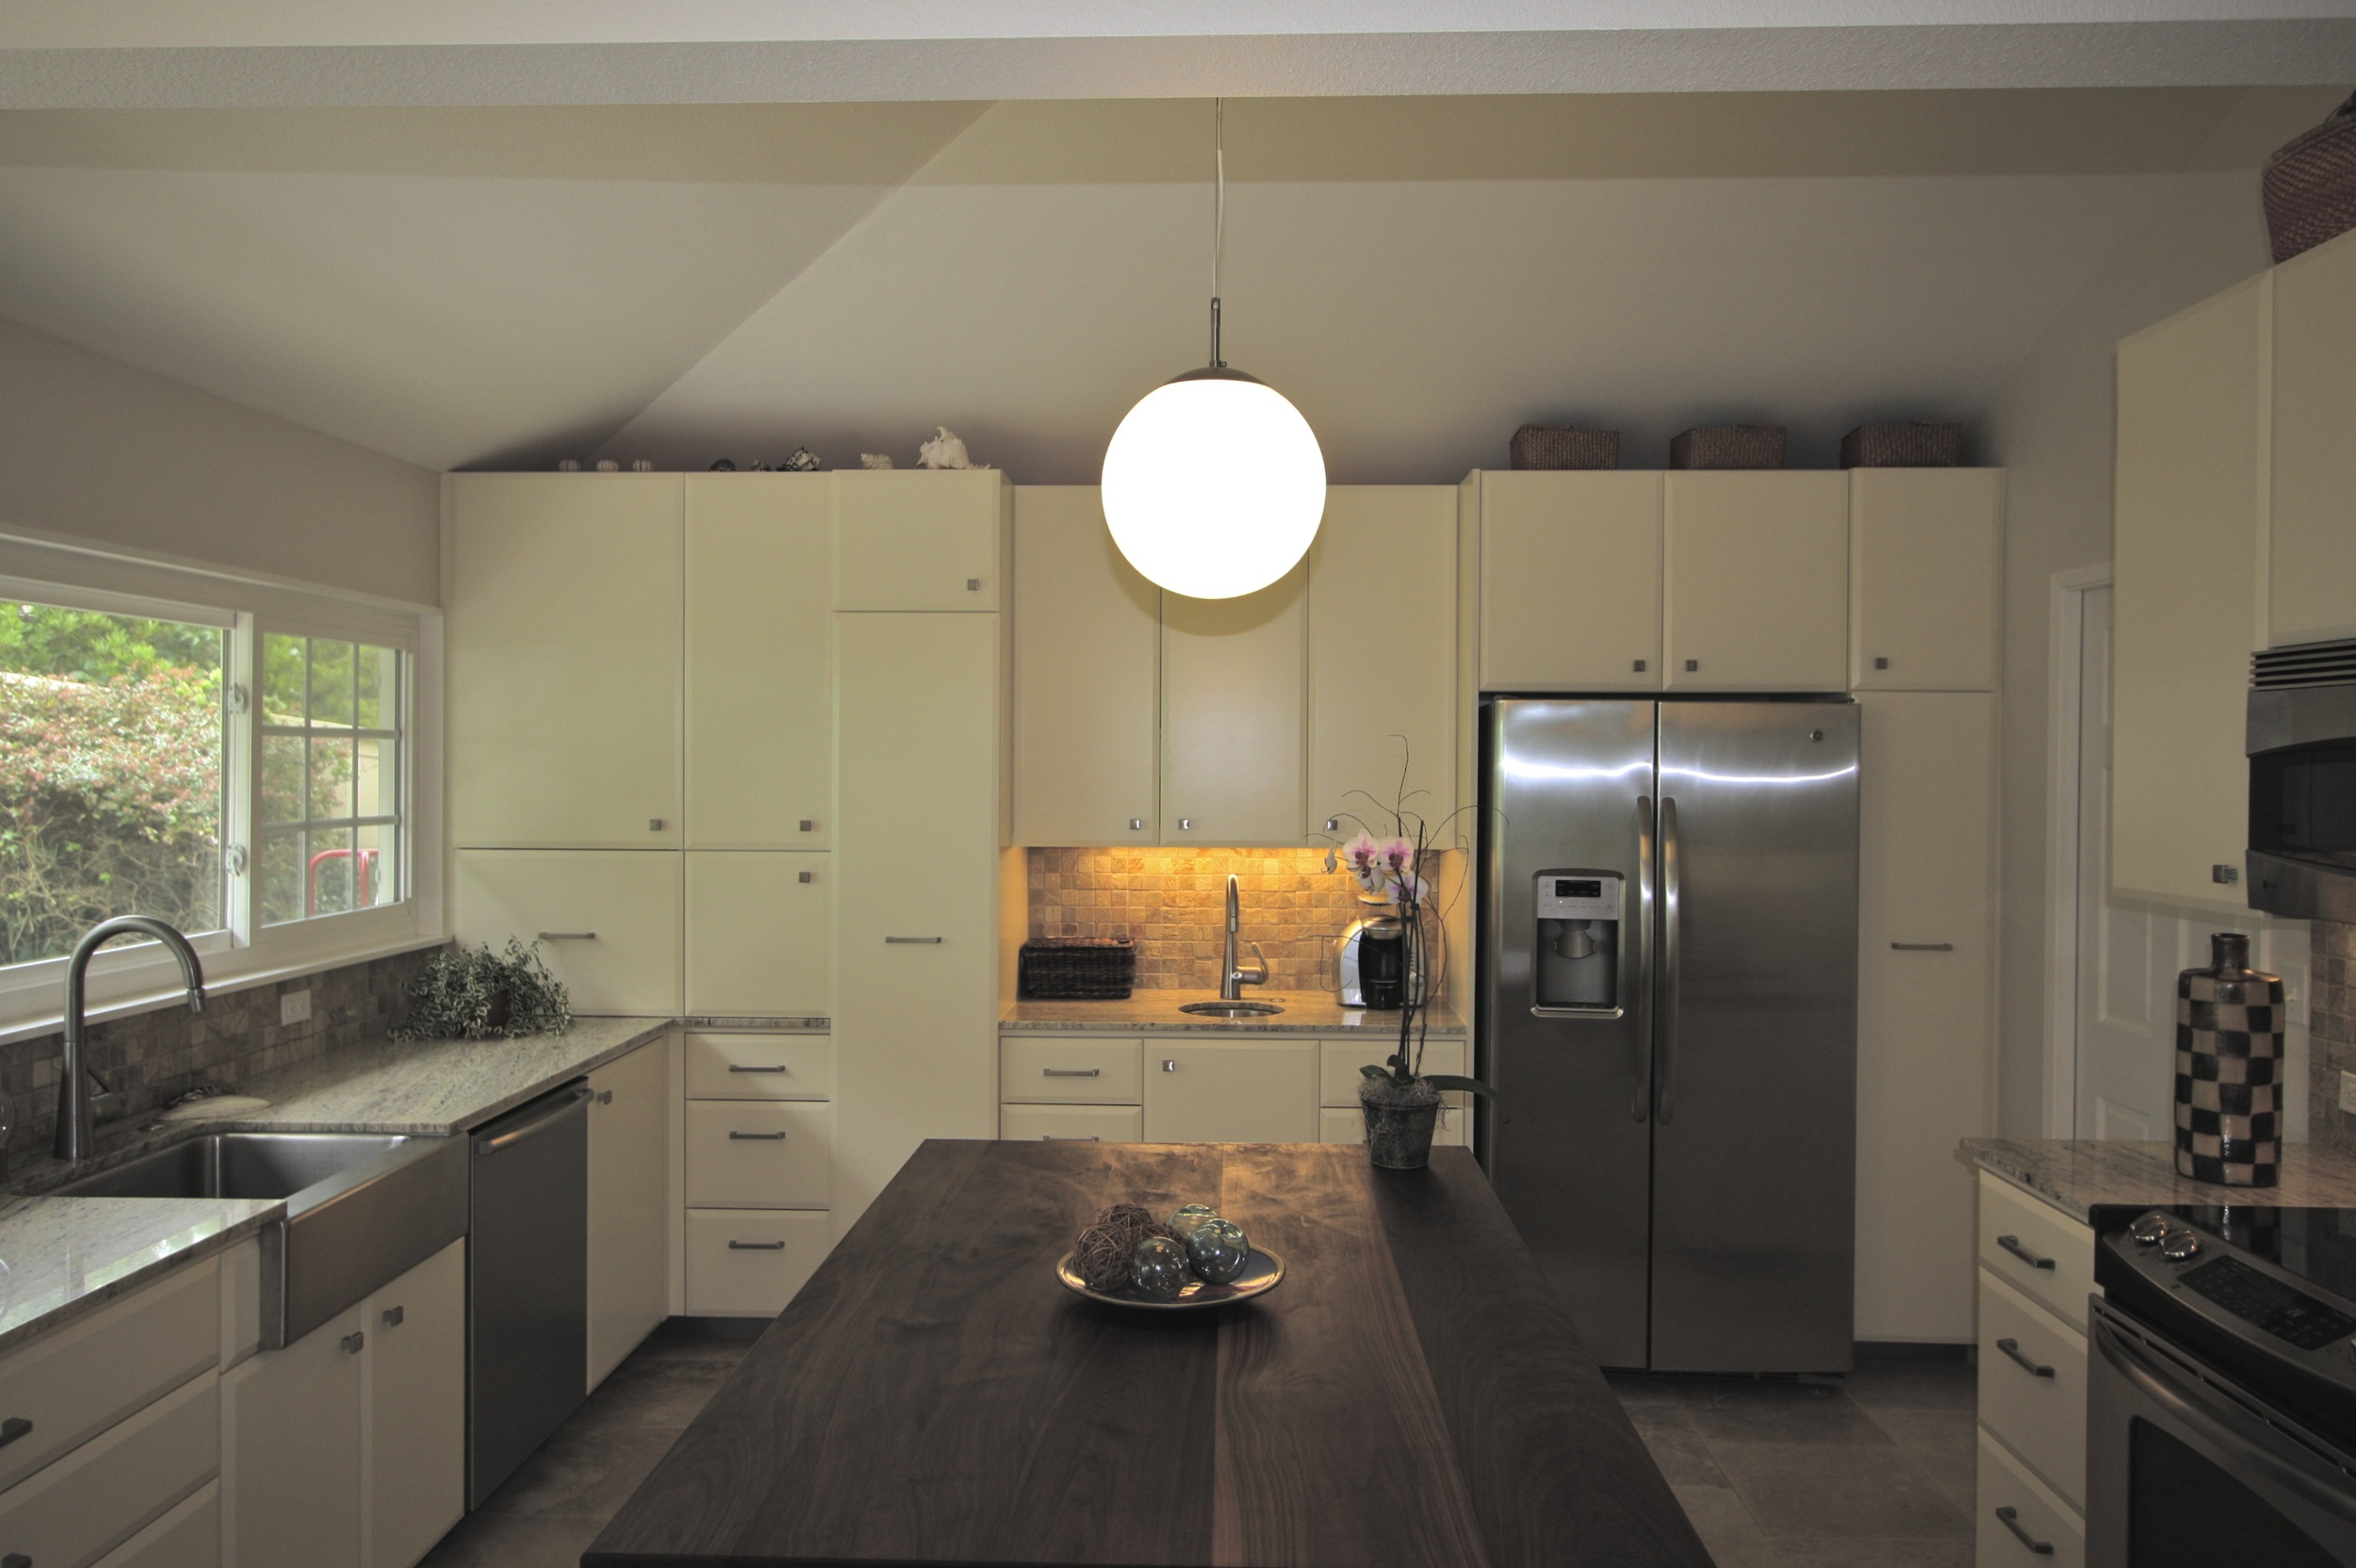 After: We created a vaulted ceilingby incorporating an unaccessibleattic over the kitchen.